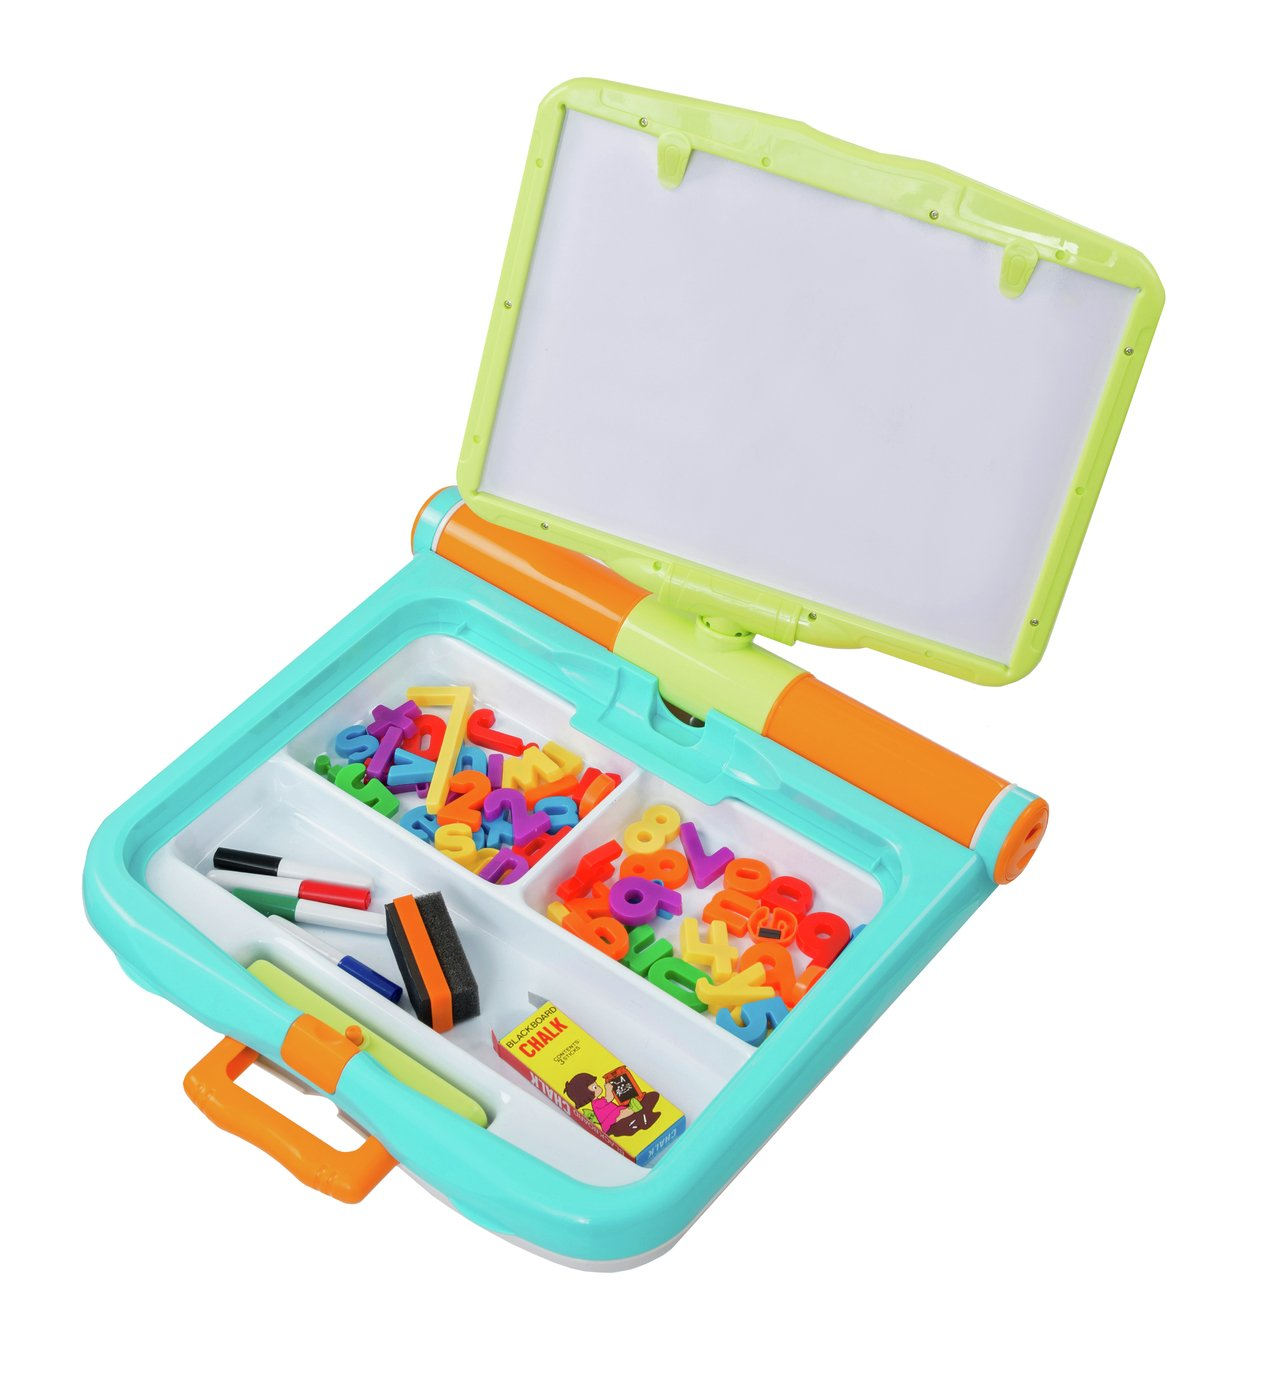 chad-valley-play-smart-magnetic-learning-play-desk